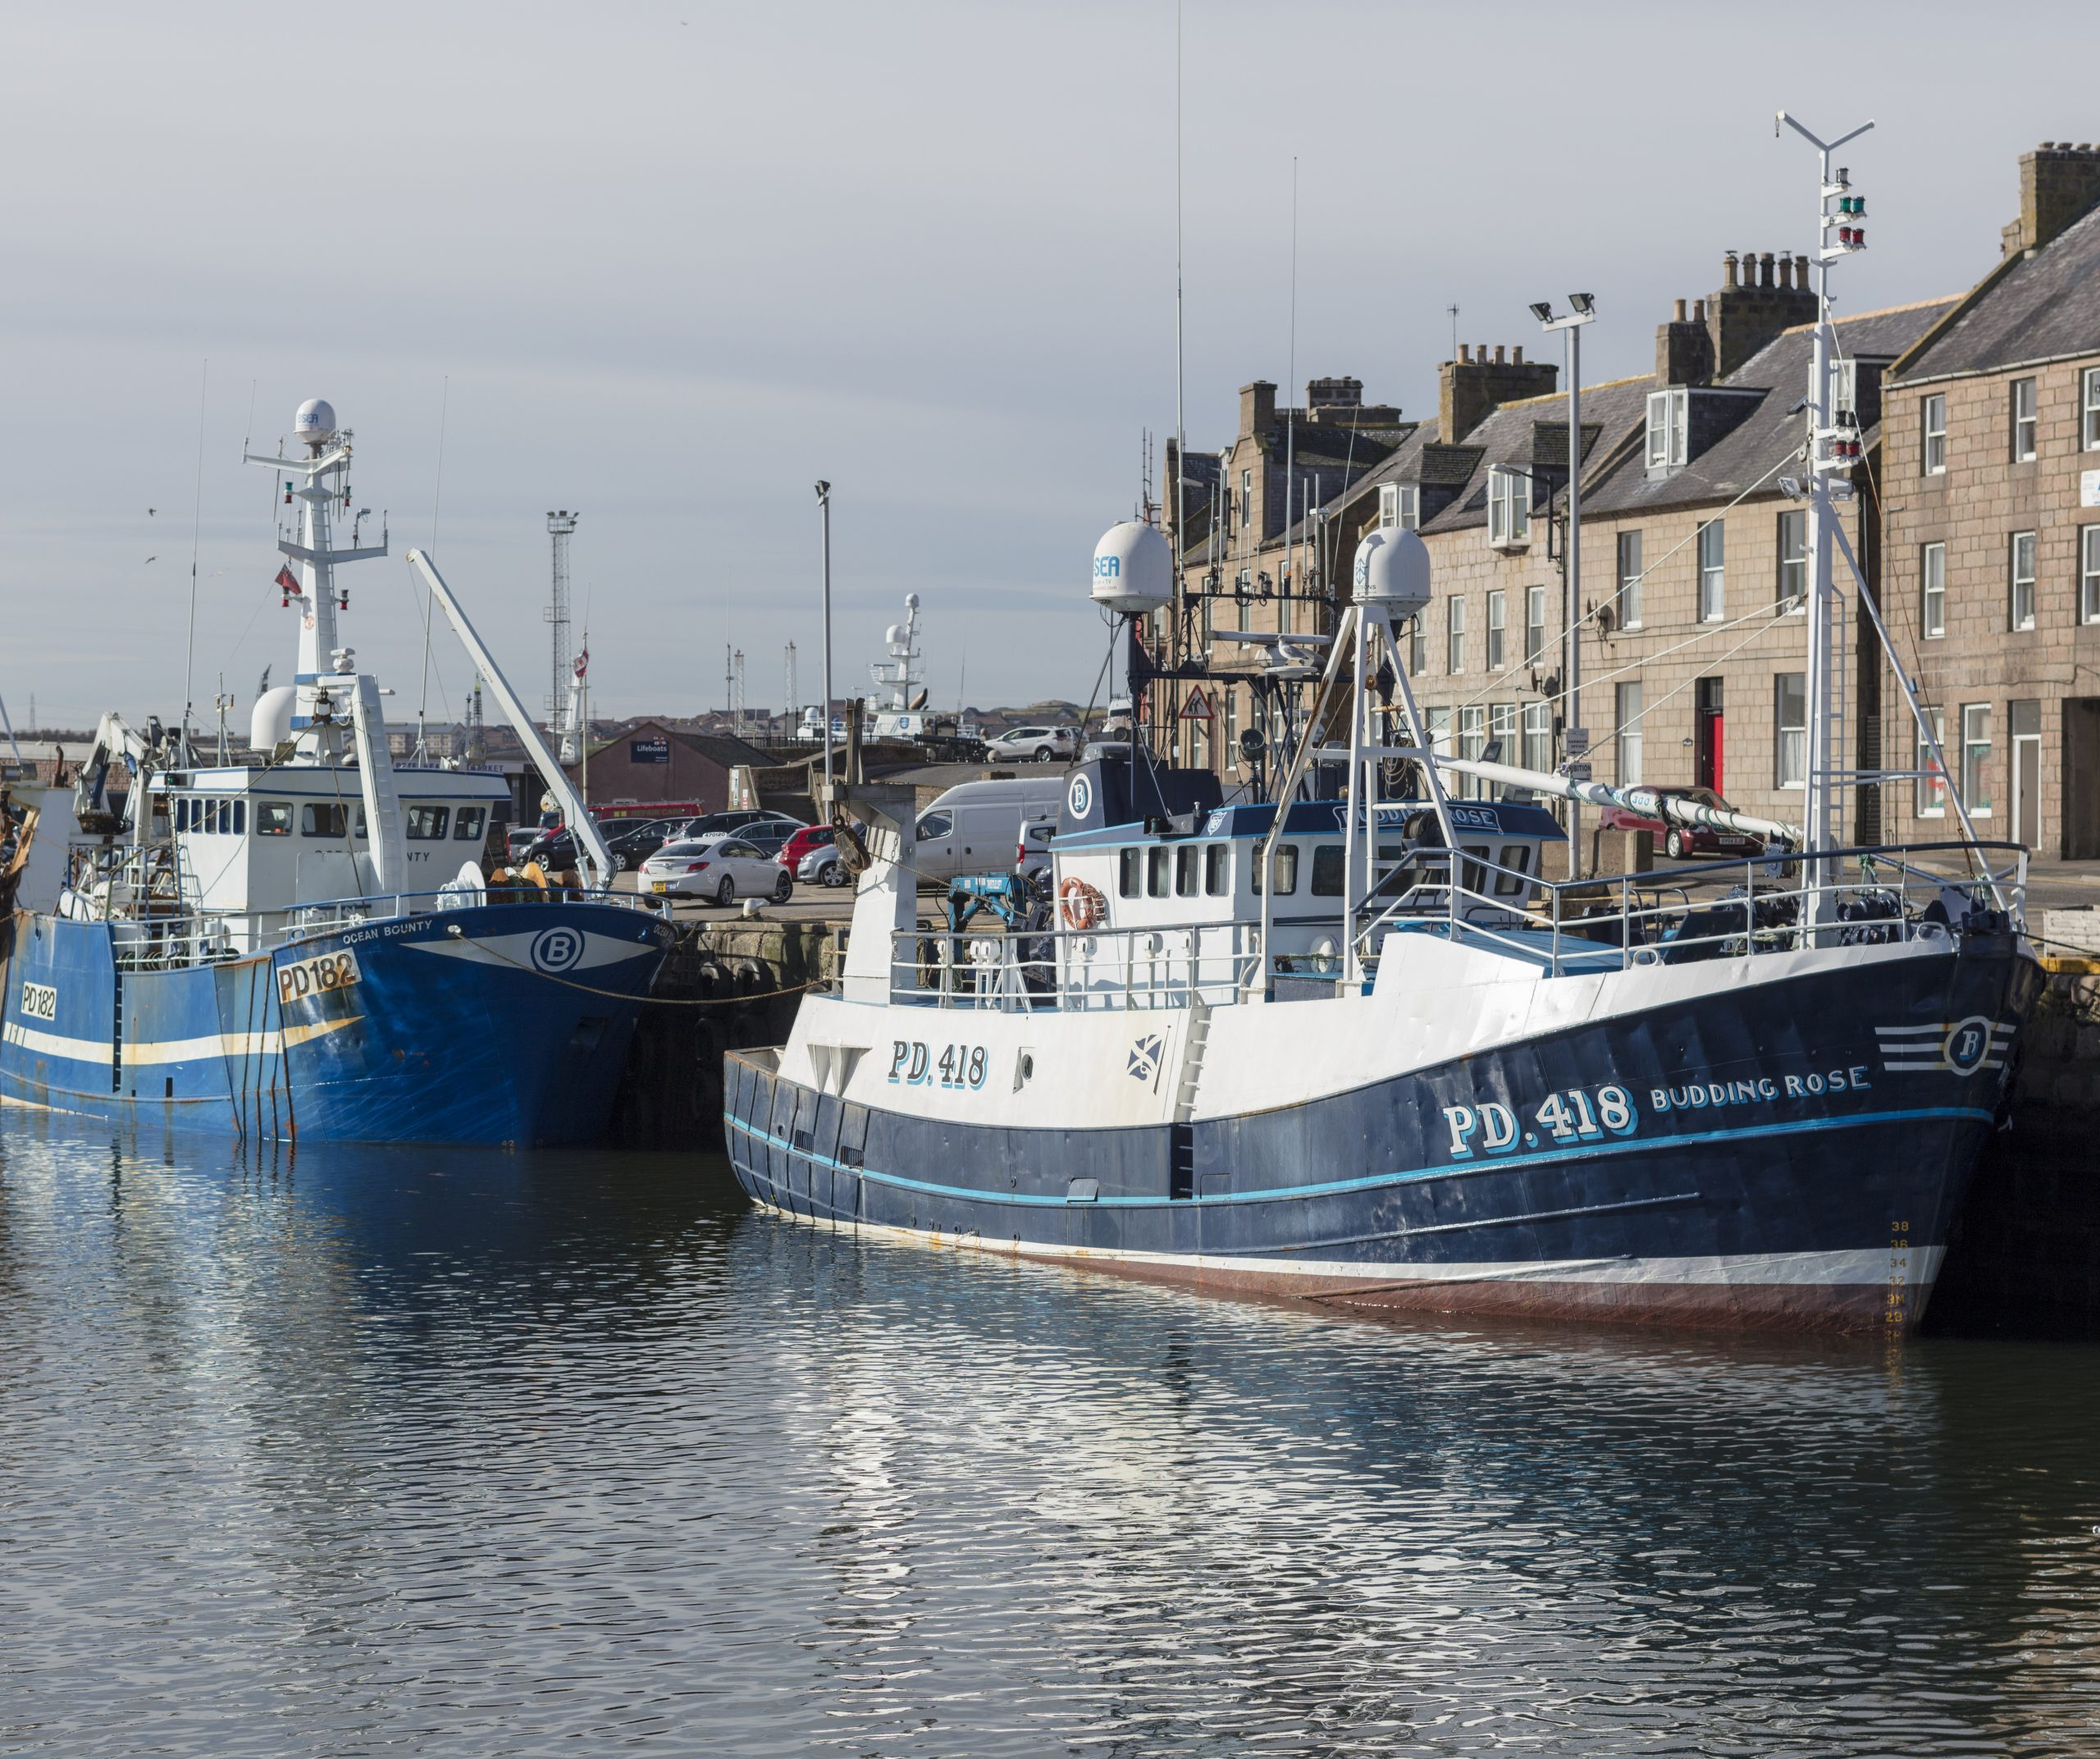 Fishing vessel owners in the northeast of Scotland will welcome the new rules on immigration